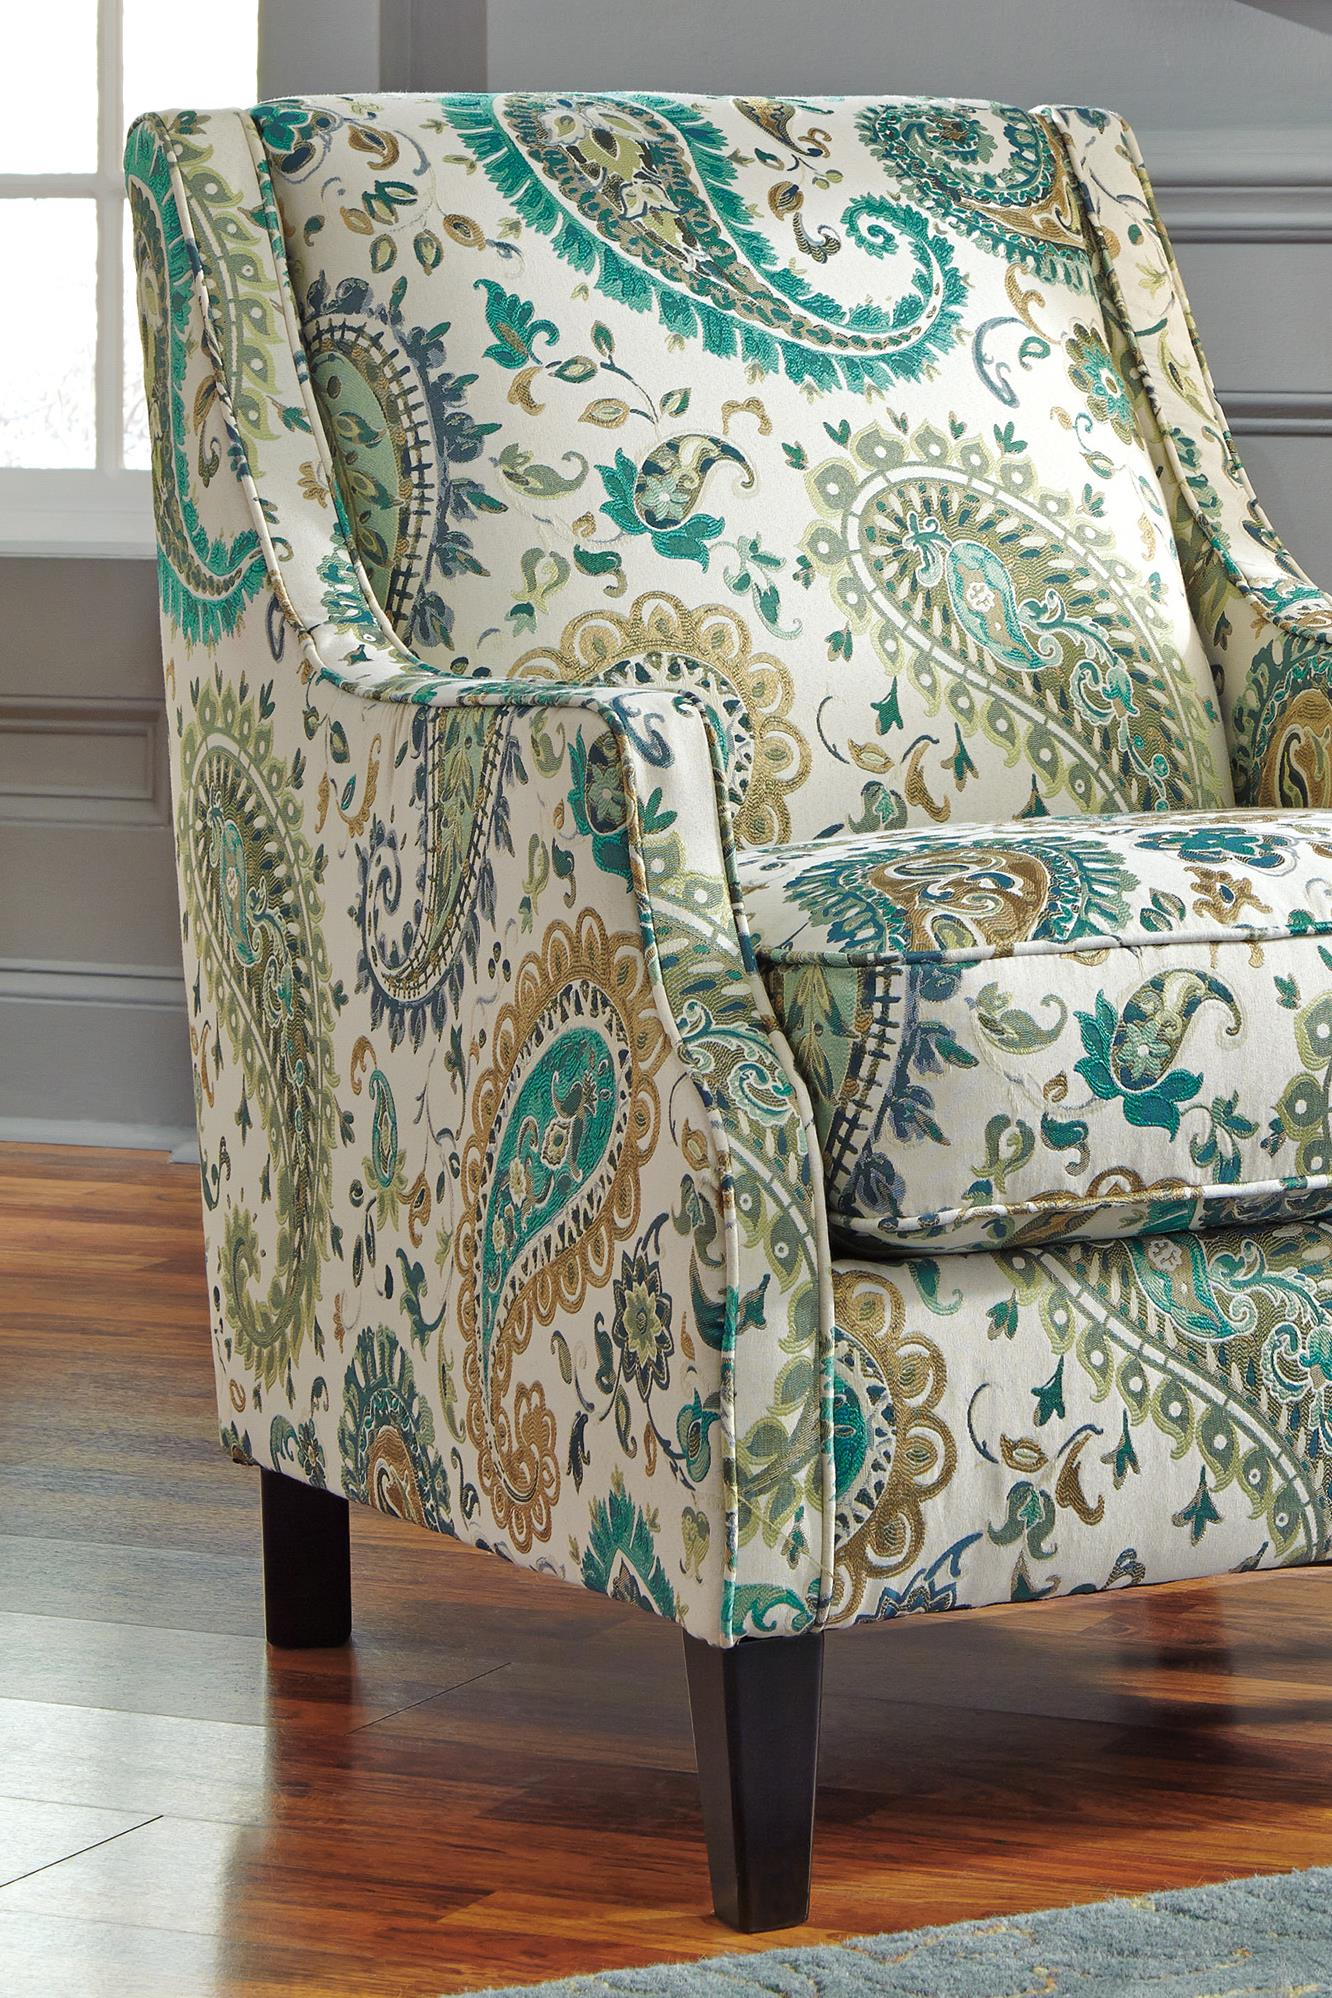 Benchcraft Lochian Transitional Accent Chair In Paisley Fabric | Wayside  Furniture | Upholstered Chairs